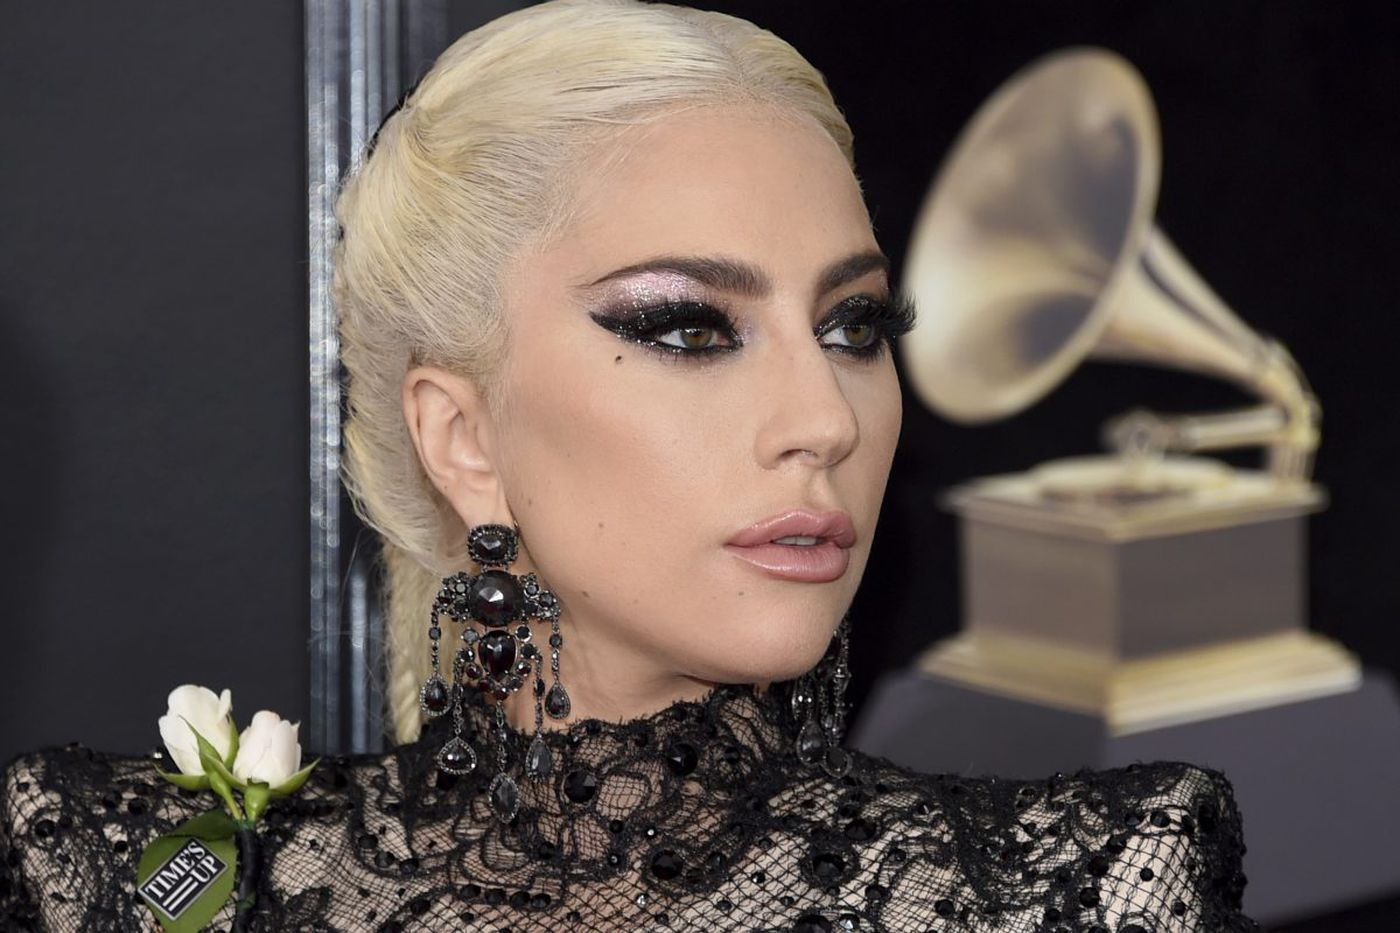 Lady Gaga's commitment to mental health training sets the standard for everyone | Opinion